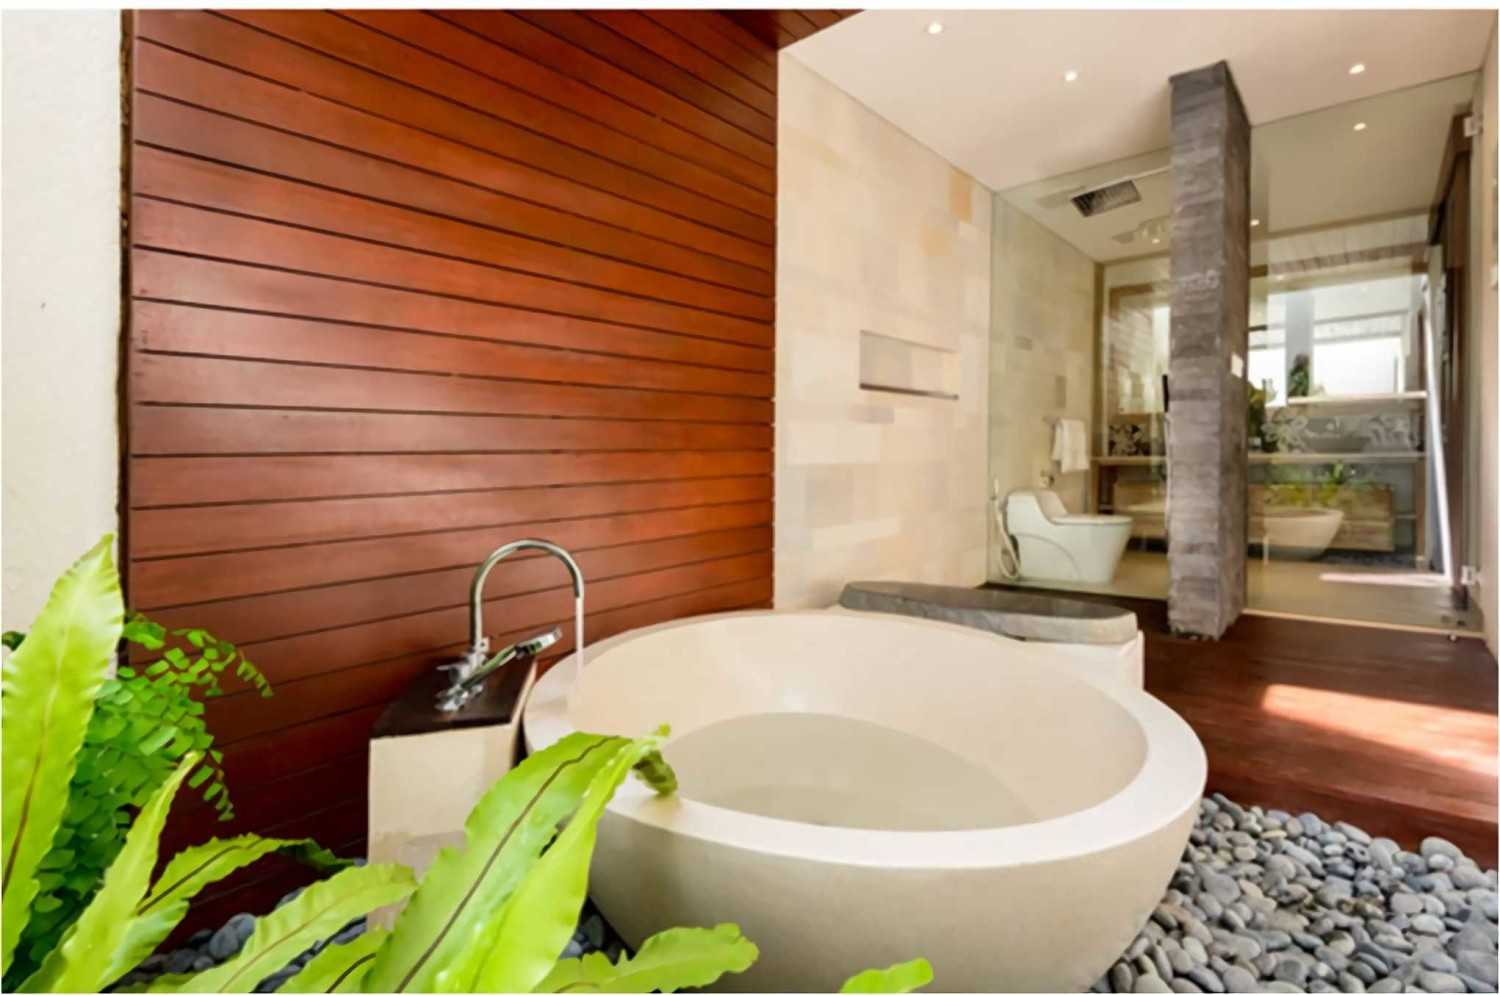 Hg Architects & Designers Associates Villa Saya Canggu, Bali Canggu, Bali Bathroom  24255